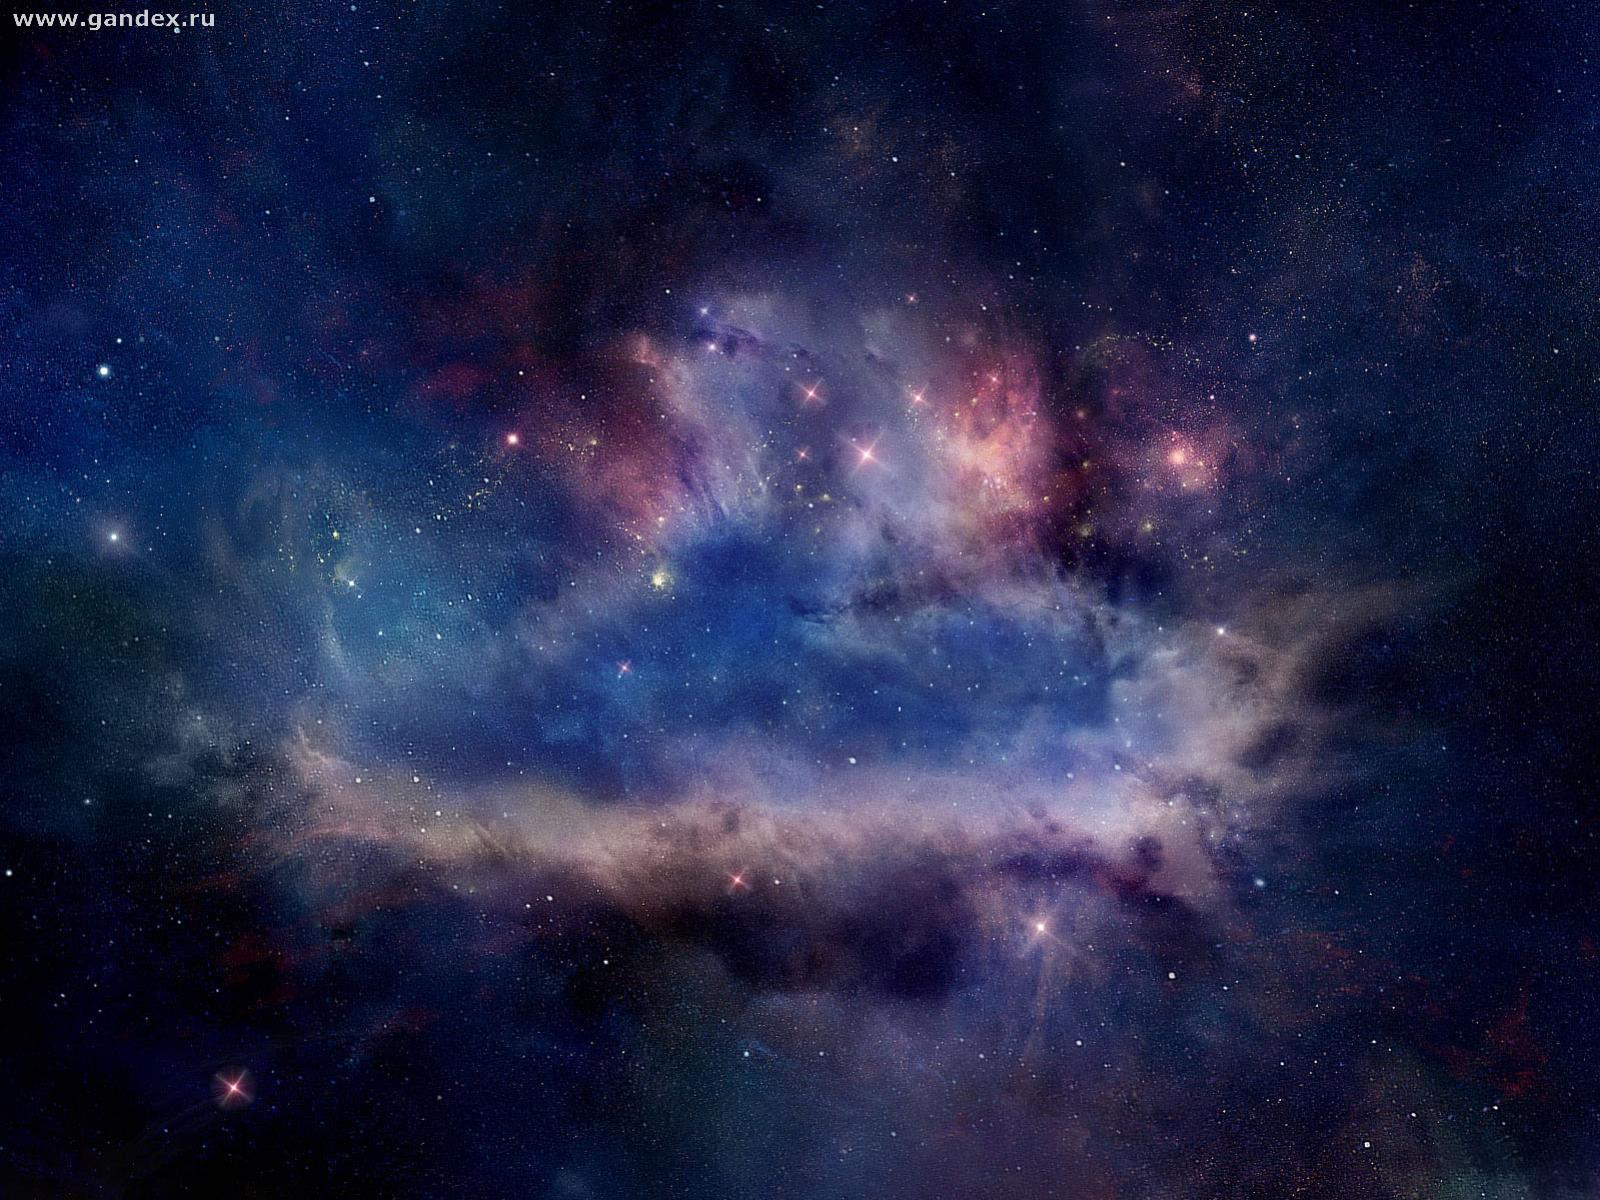 Space wallpaper - a beautiful picture for your desktop - space clouds